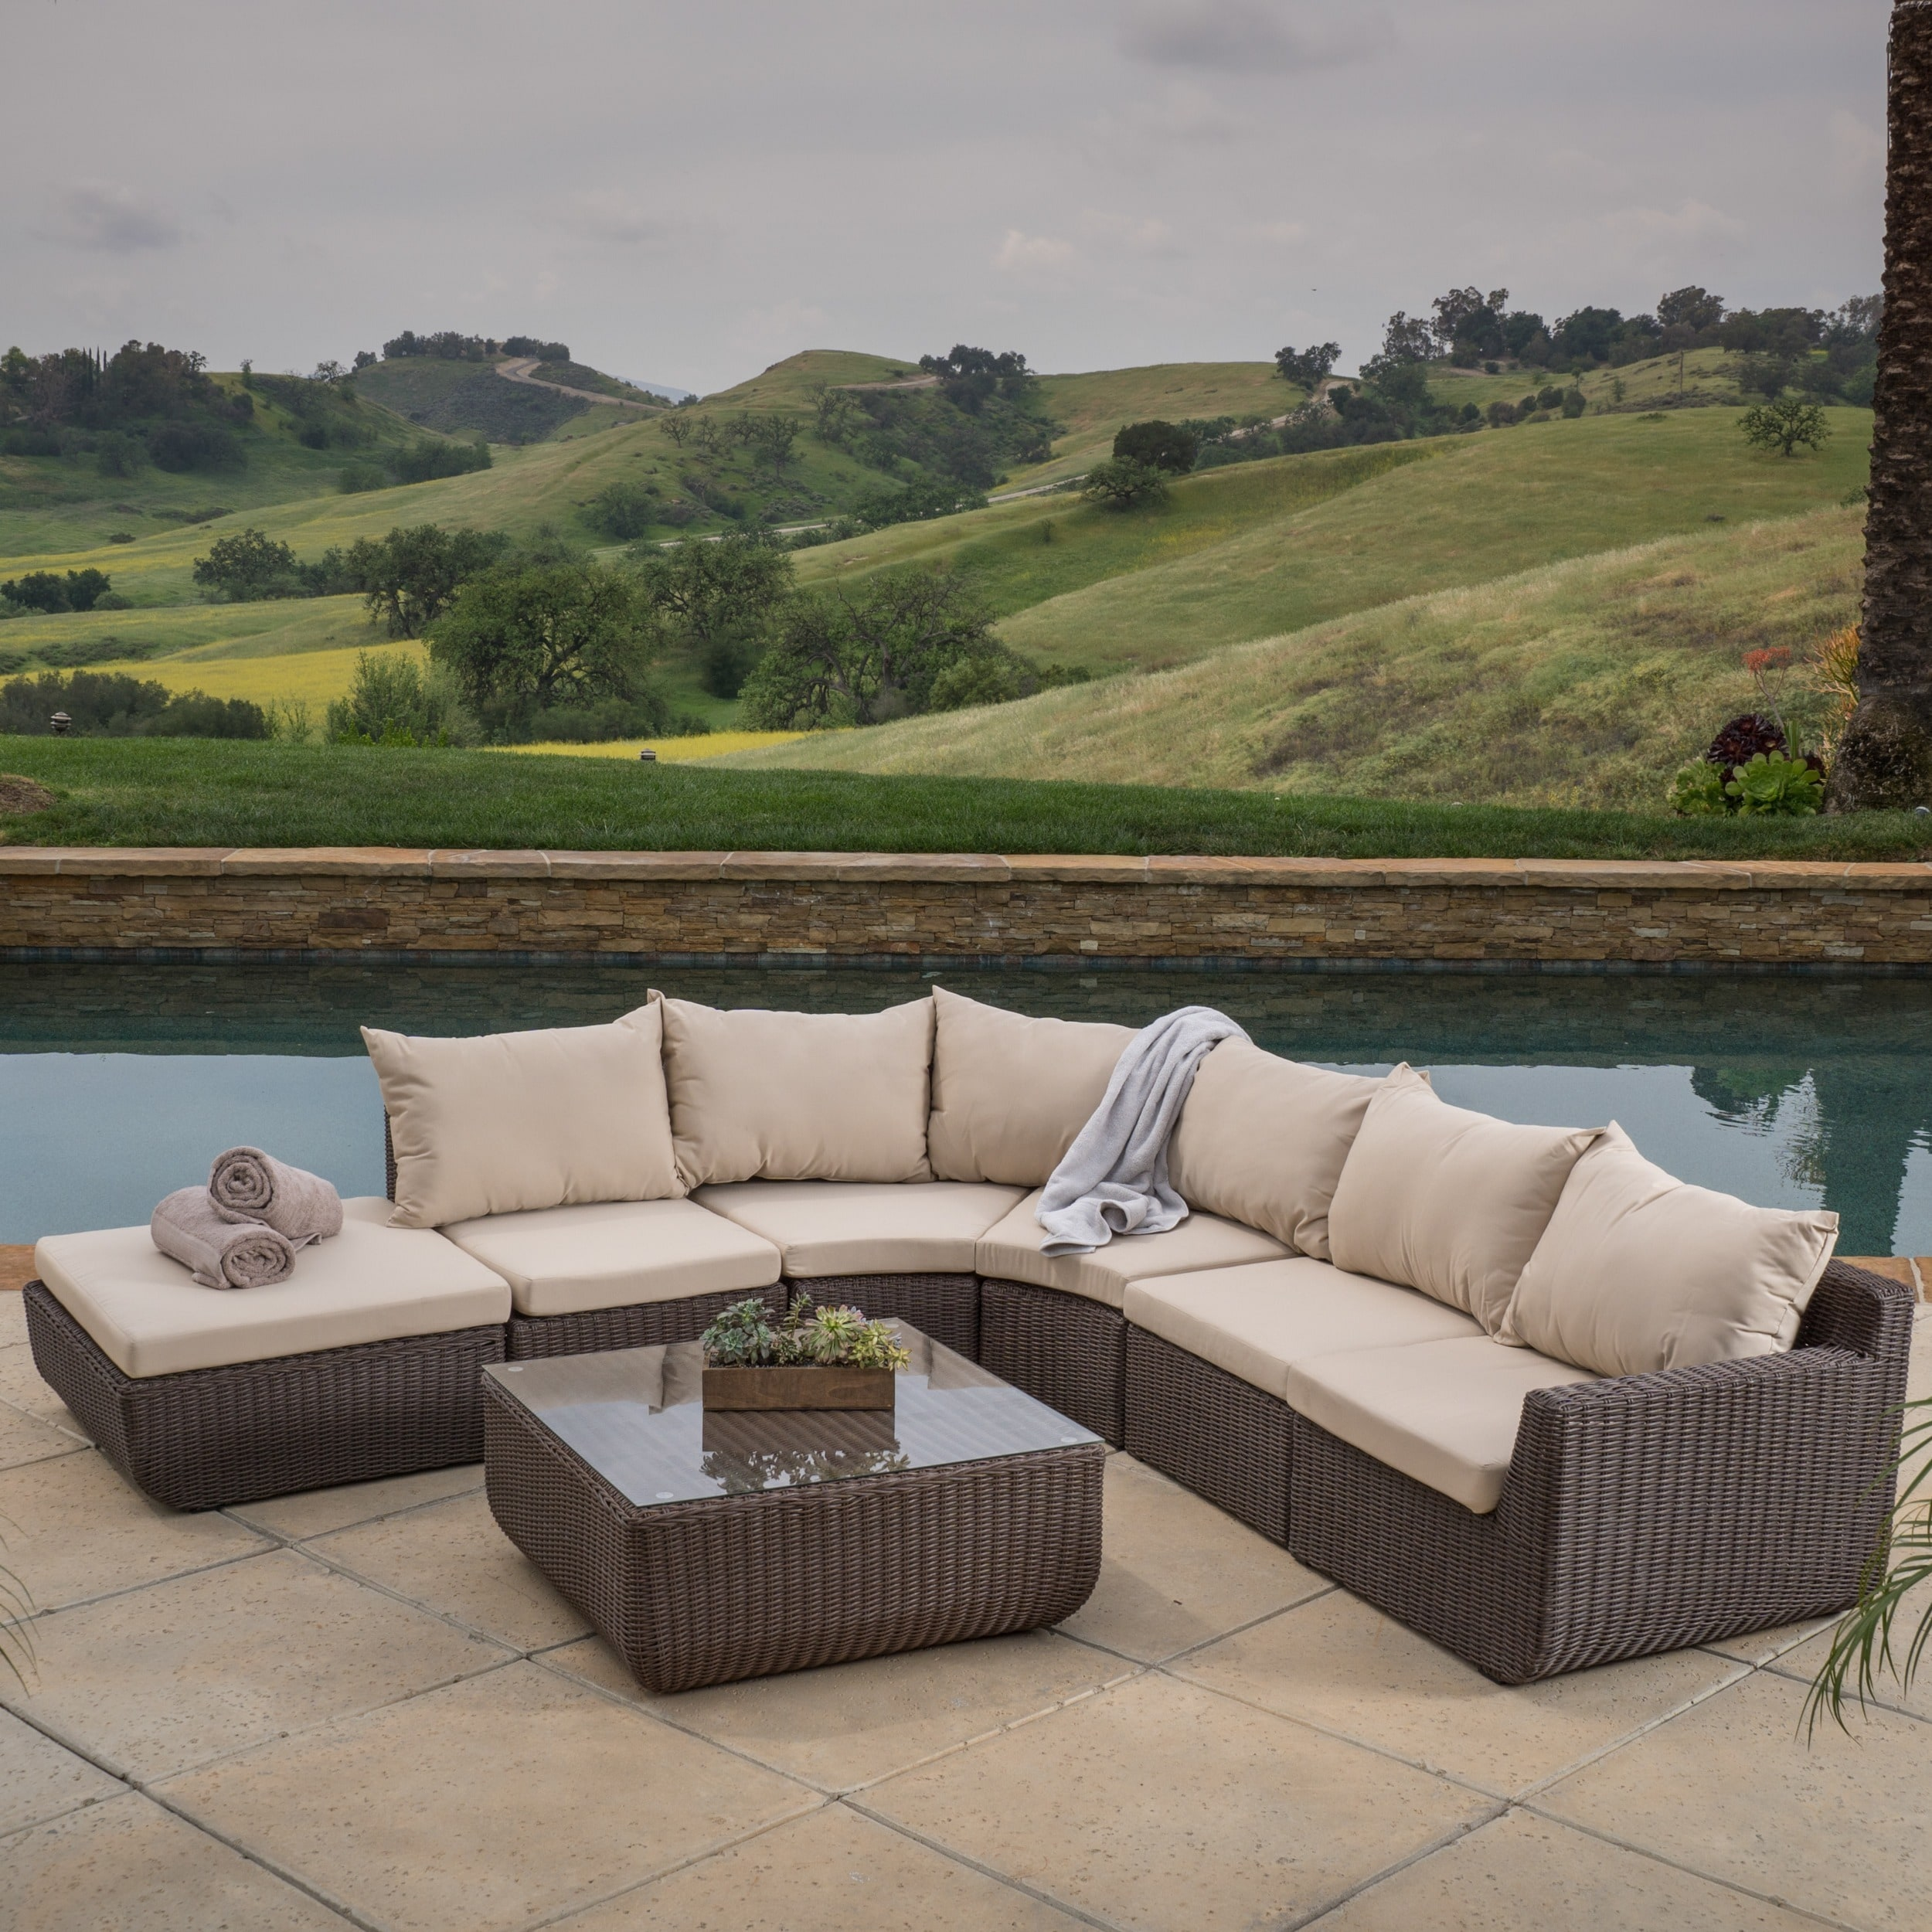 sterling of finishes patio sectional carehomedecor outdoor outdoors cor with decor furniture your d